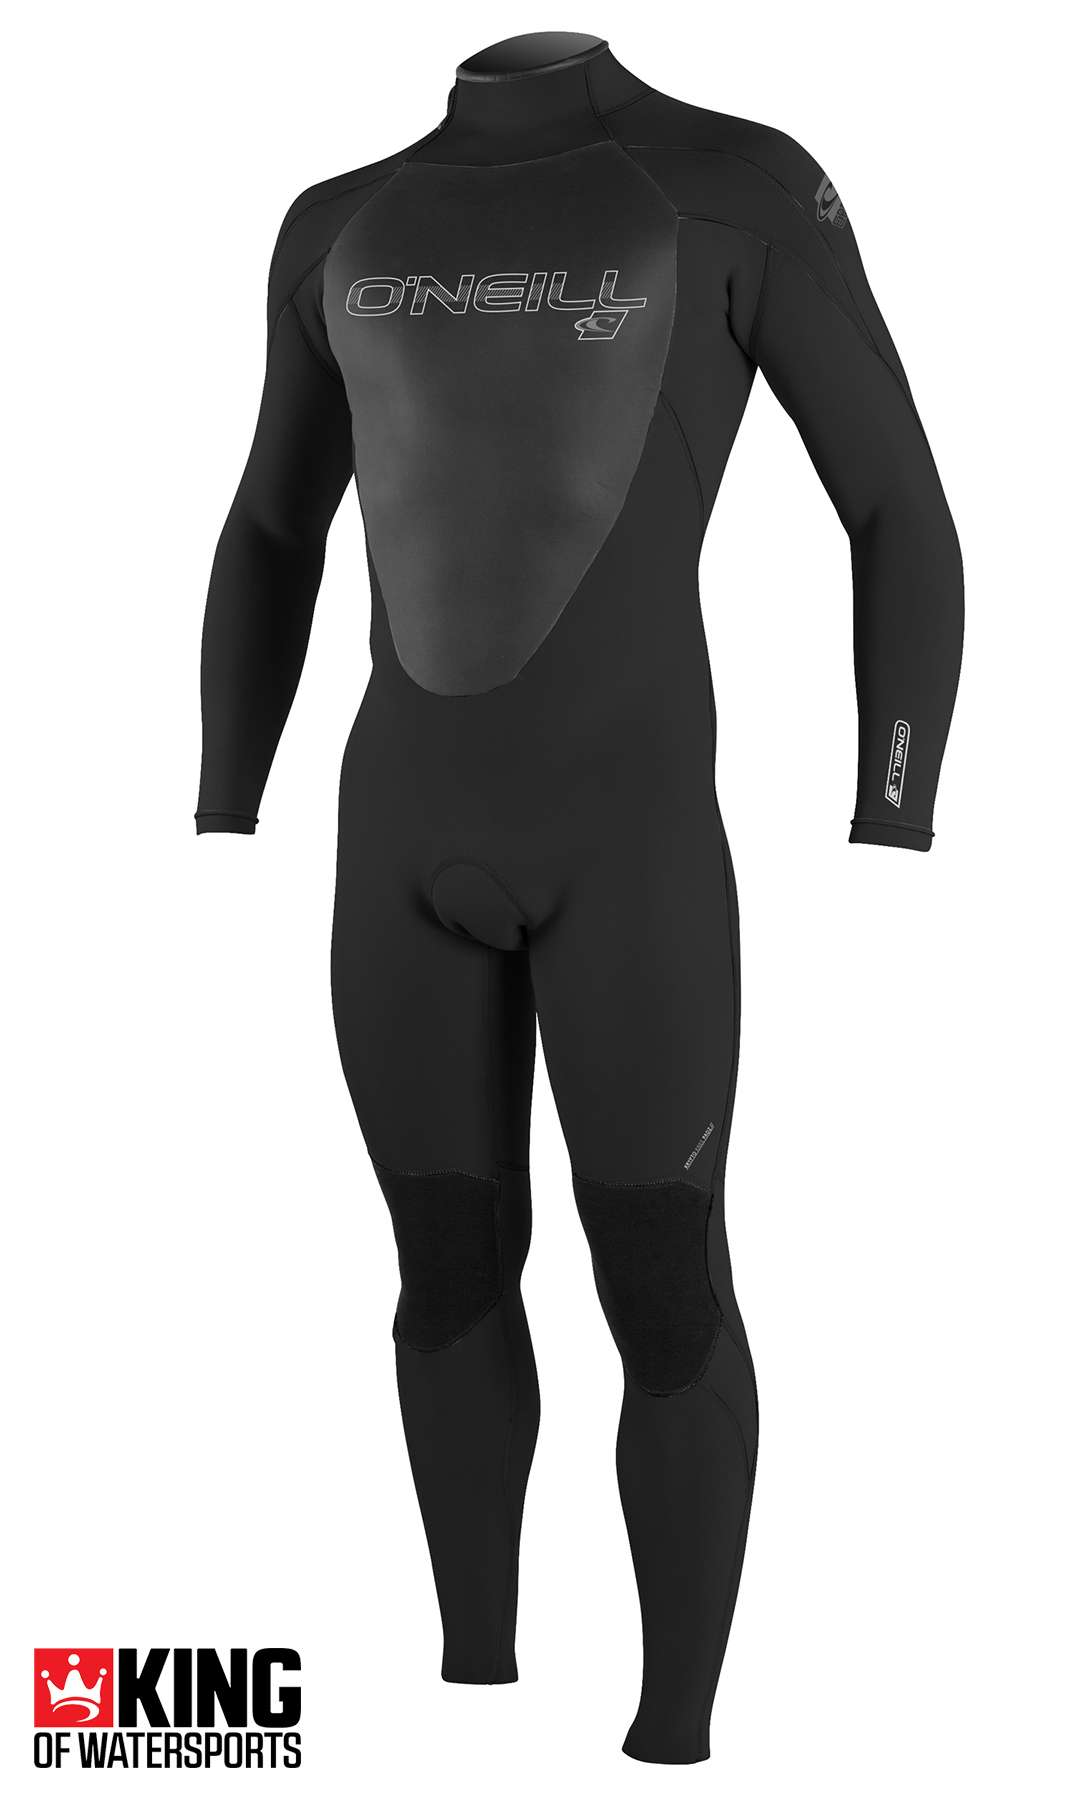 o neill wetsuit size guide